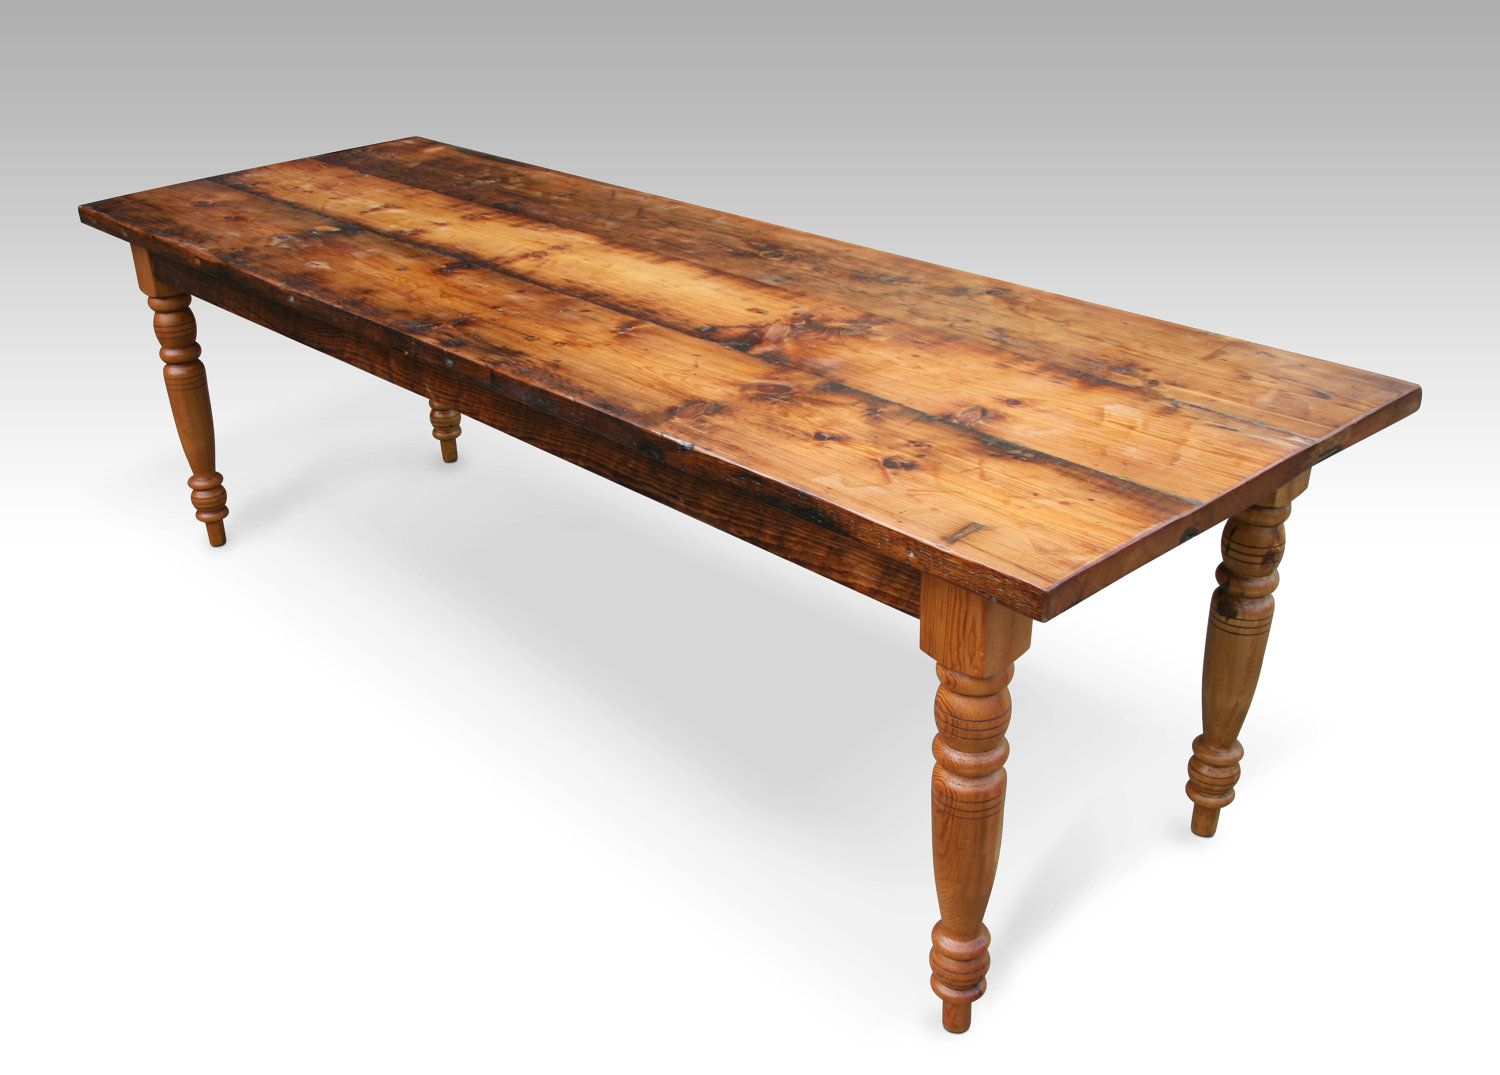 Farmhouse wooden kitchen tables with benches - Reclaimed Wood Farmhouse Dining Table Turned Legs Recycled Salvaged Lumber 2 050 00 Via Etsy